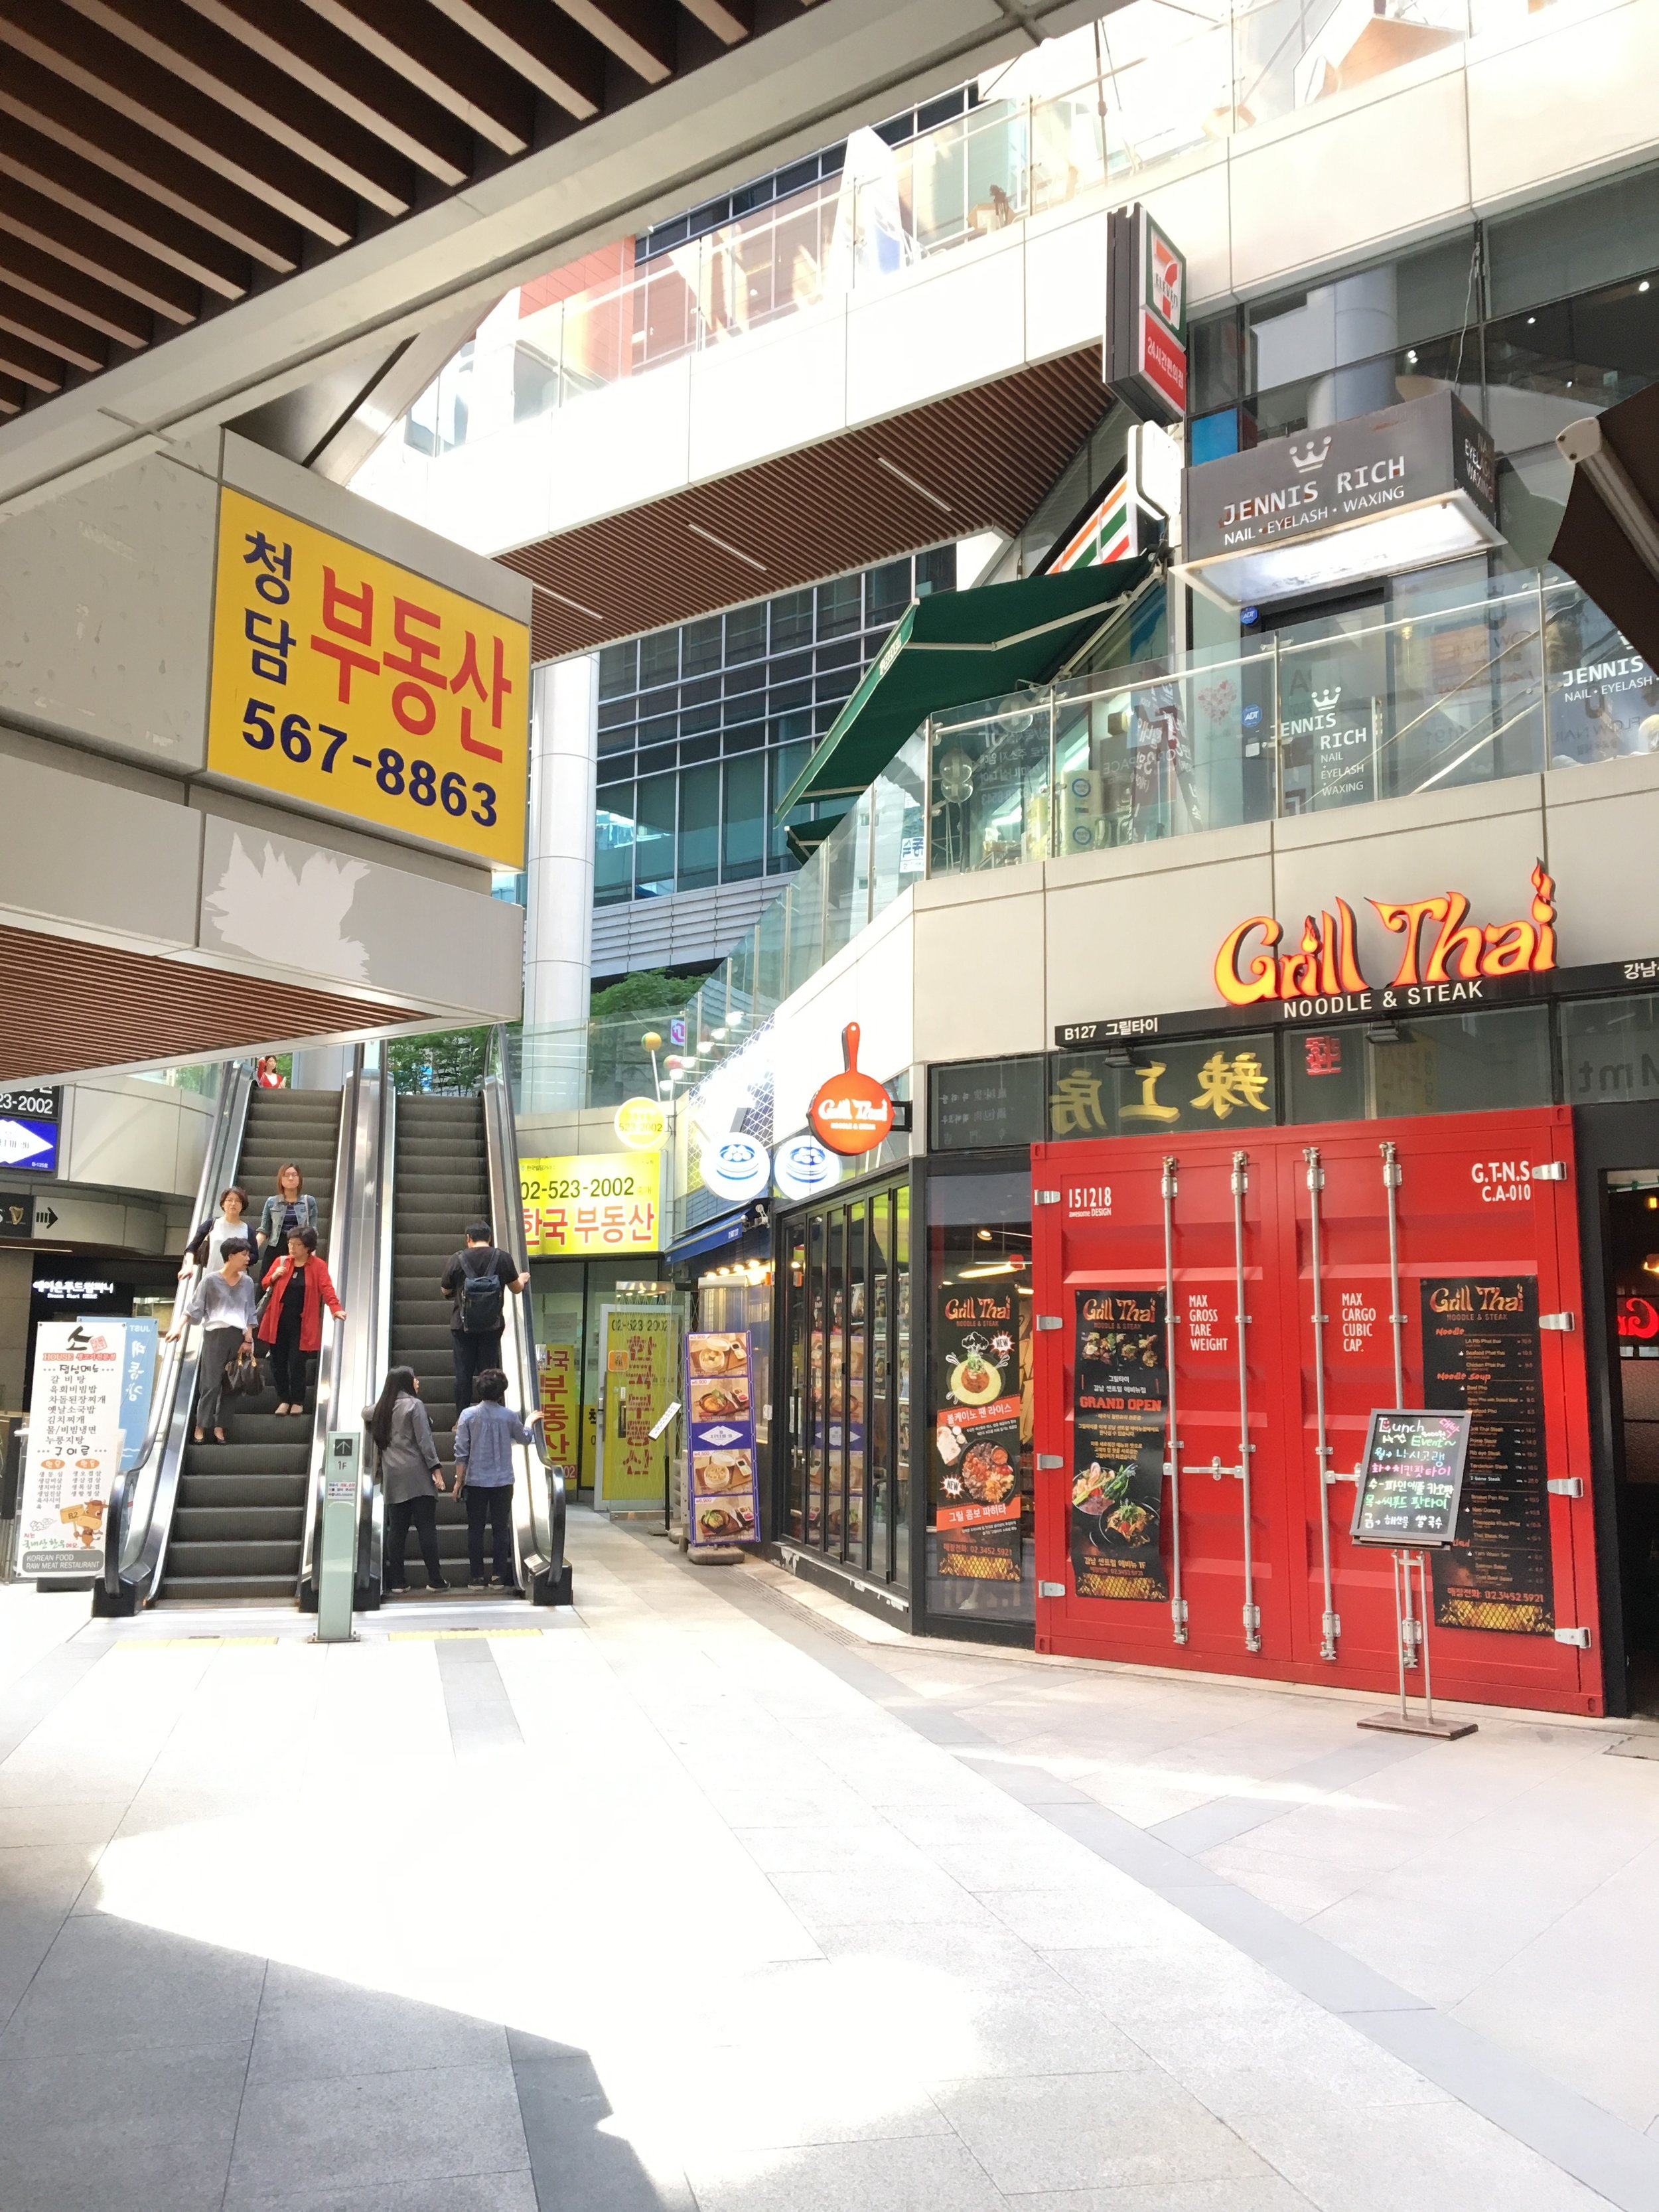 6. You will see escalator, then take a right at grill thai - Then you will see elevator.